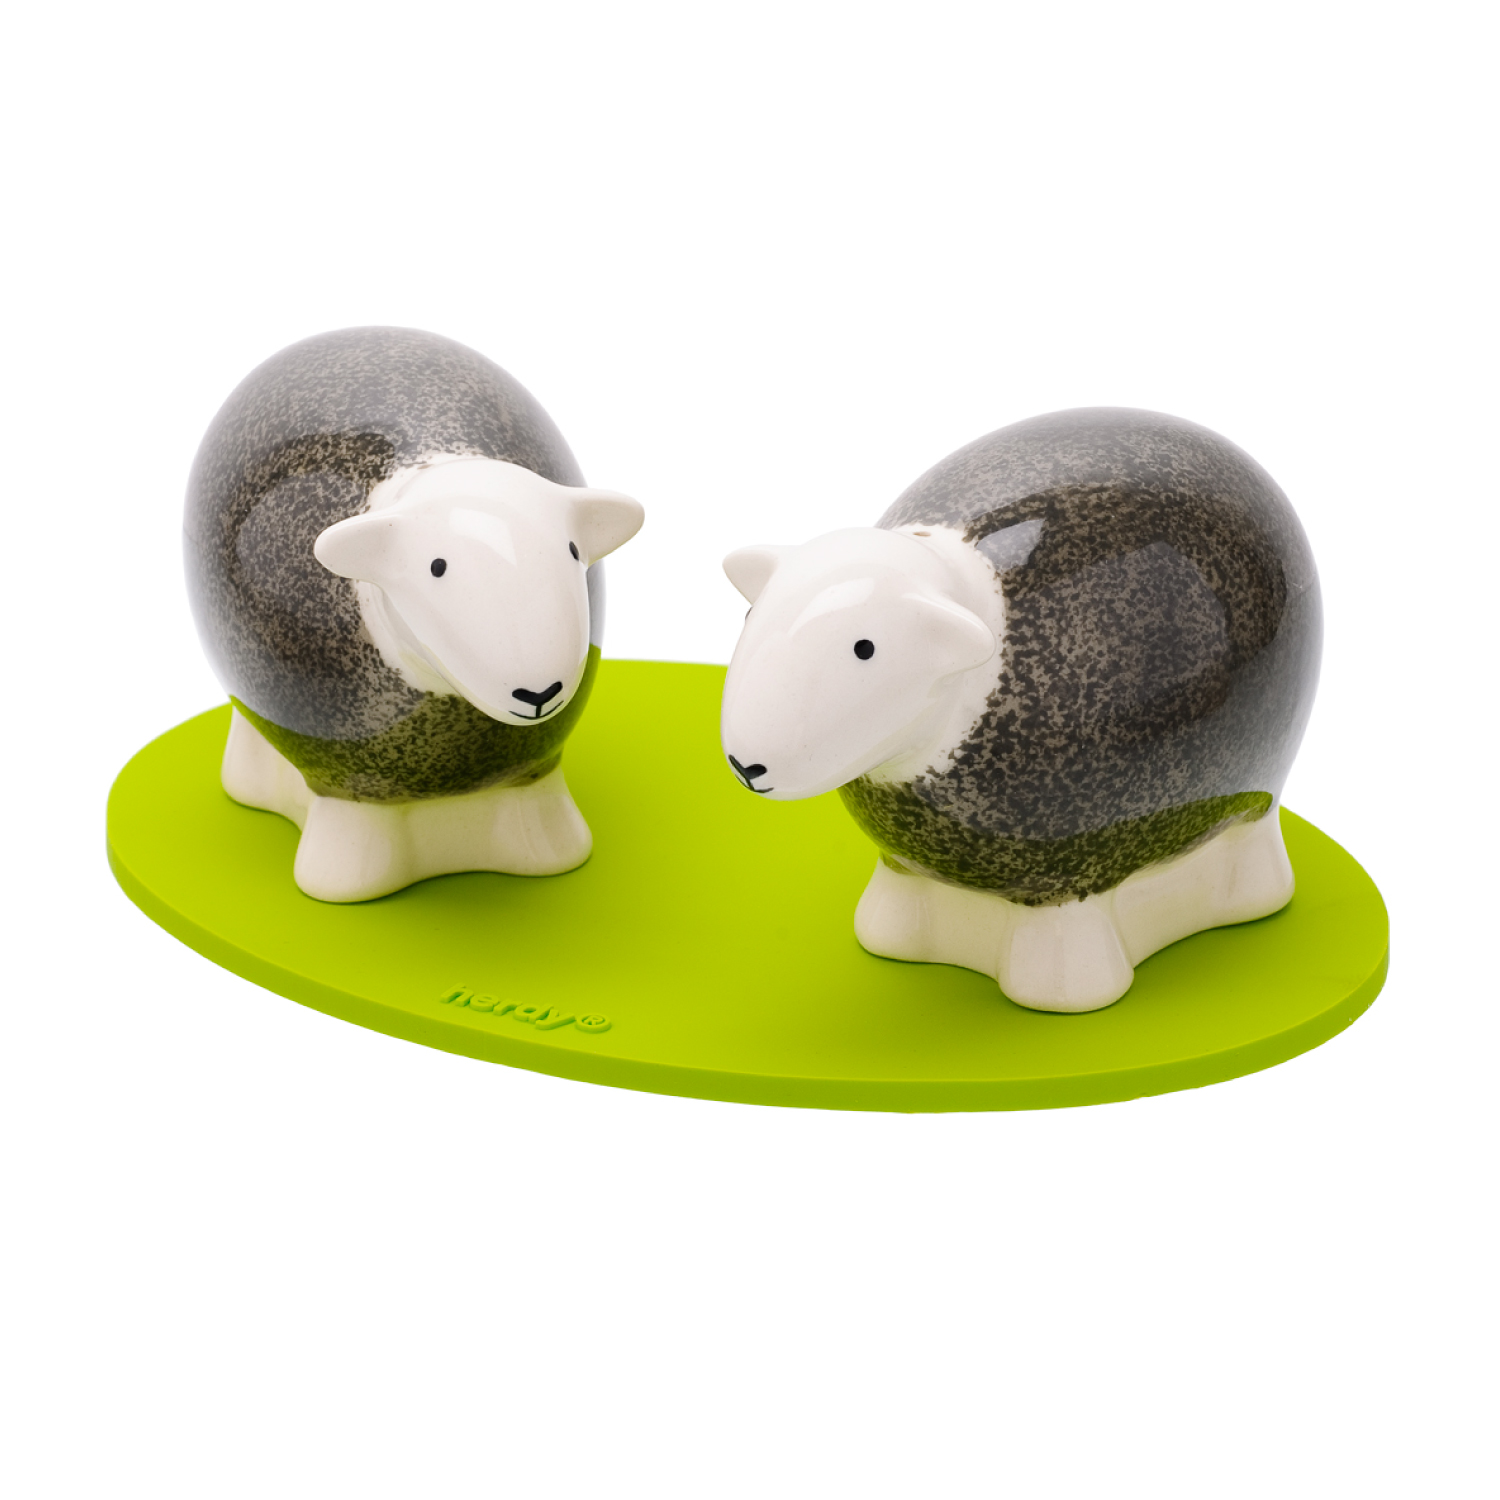 Salt And Pepper Shakers - Grey